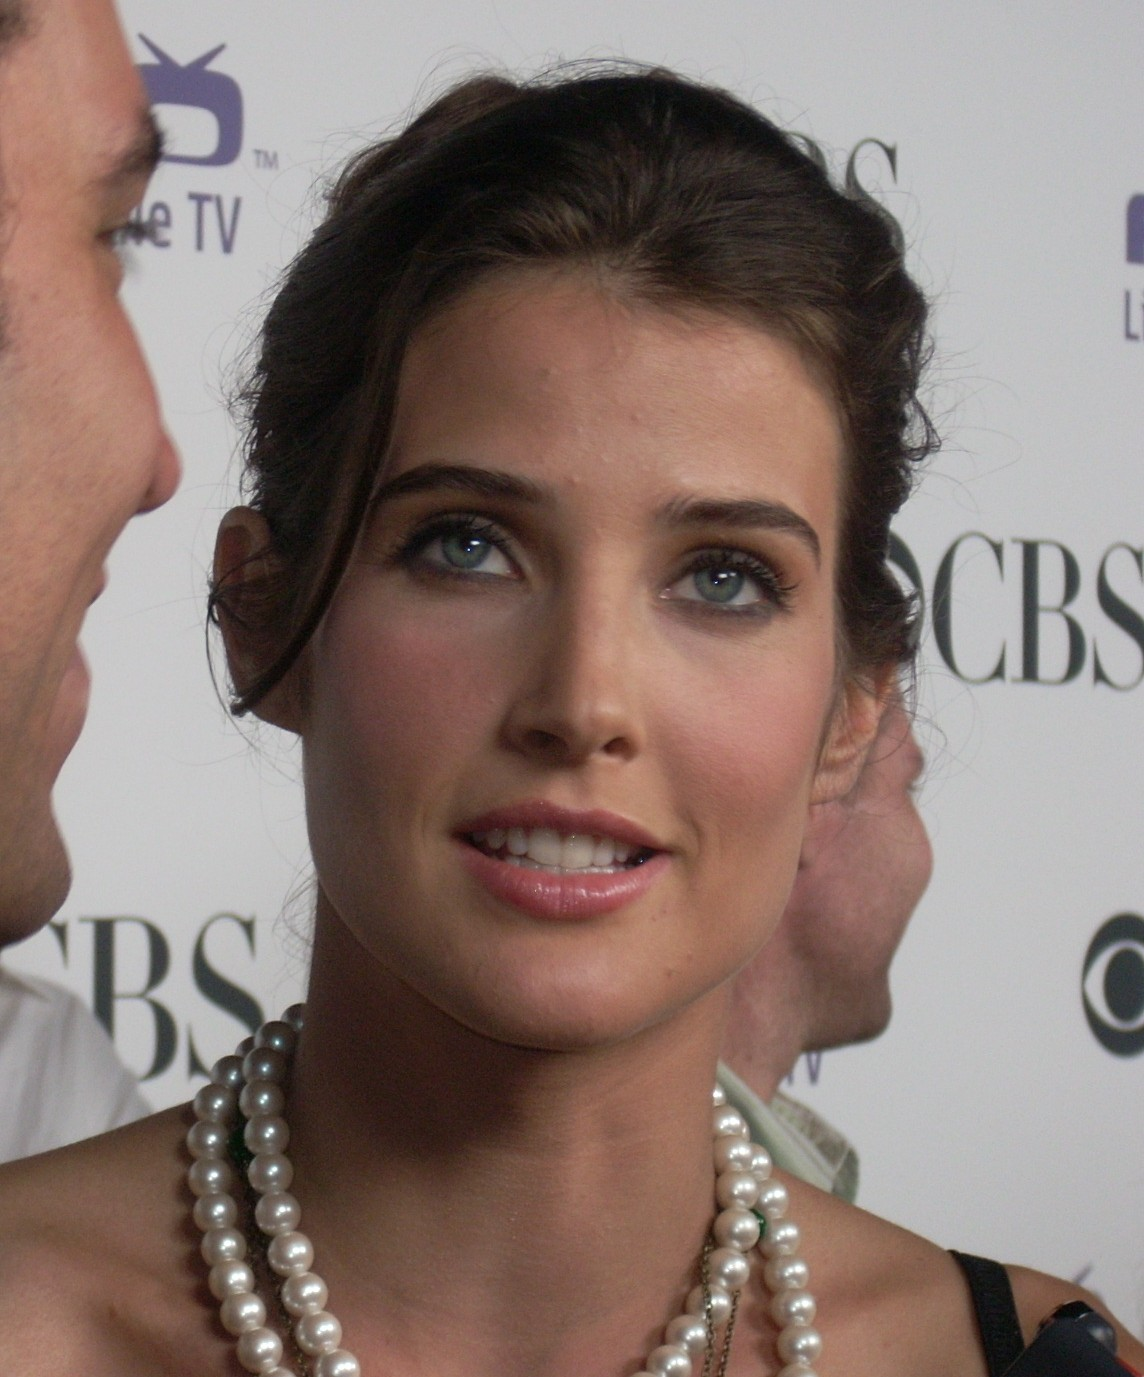 Cobie Smulders - Photo Actress